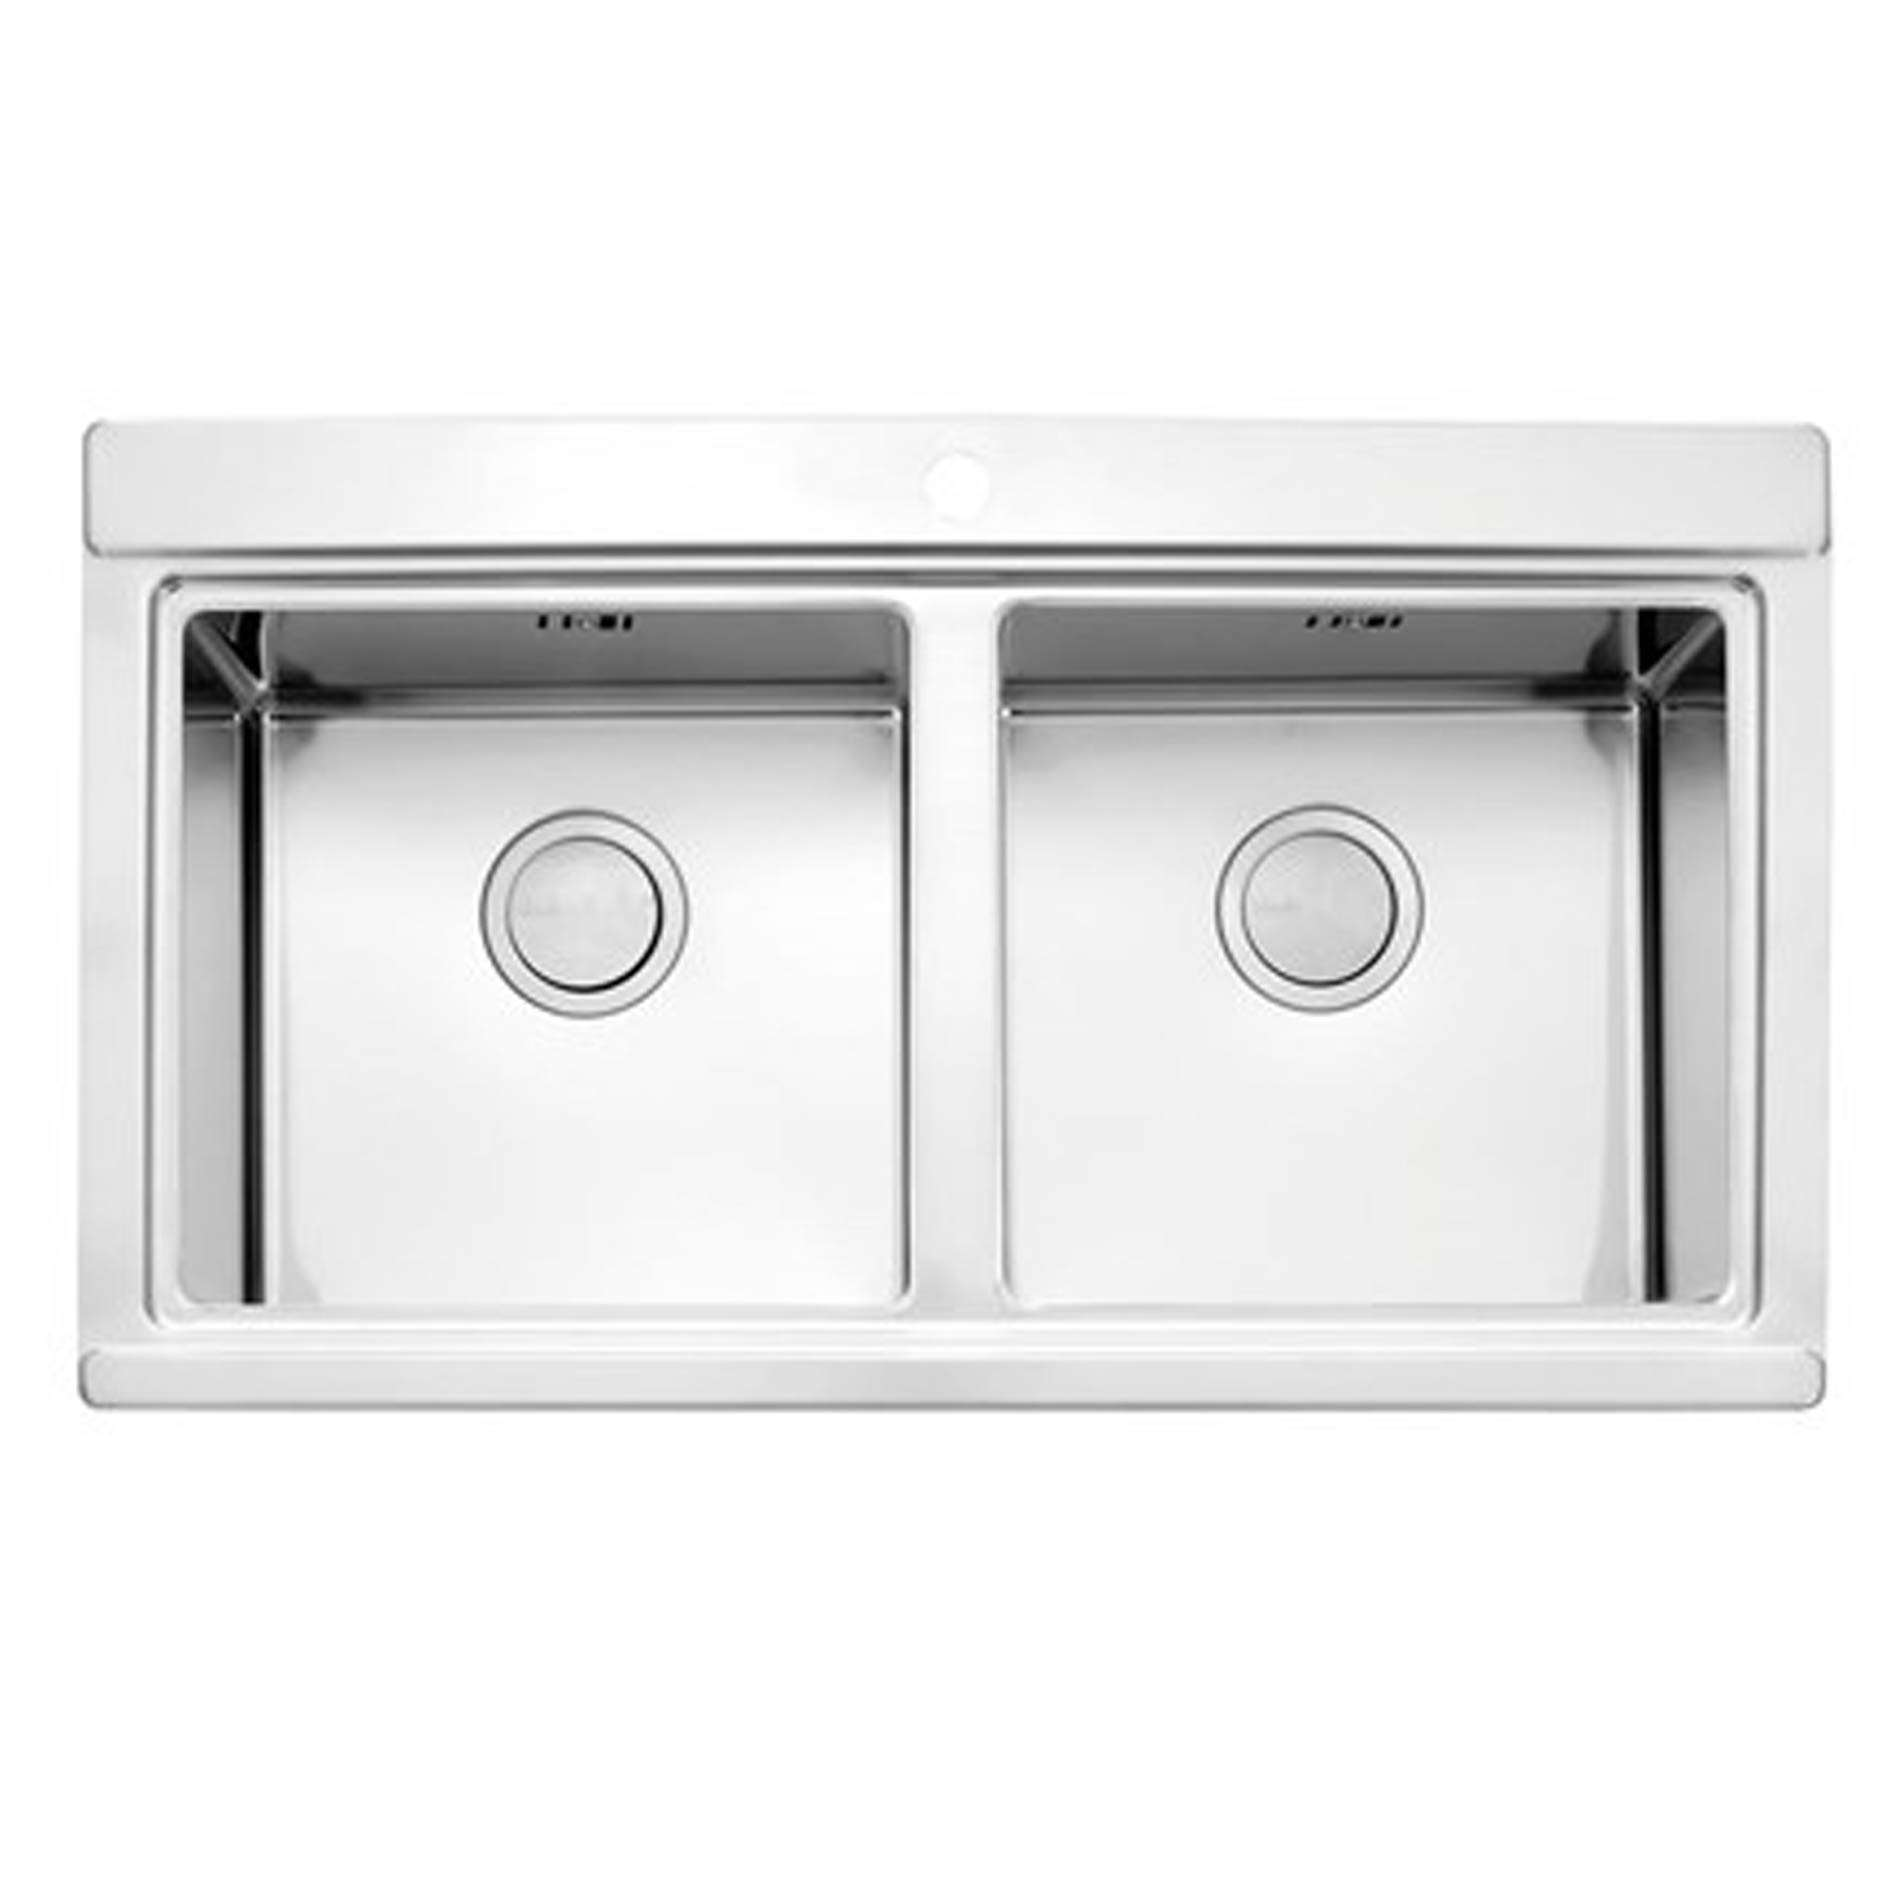 Clearwater Glacier Double Bowl Stainless Steel Sink Kitchen Sinks